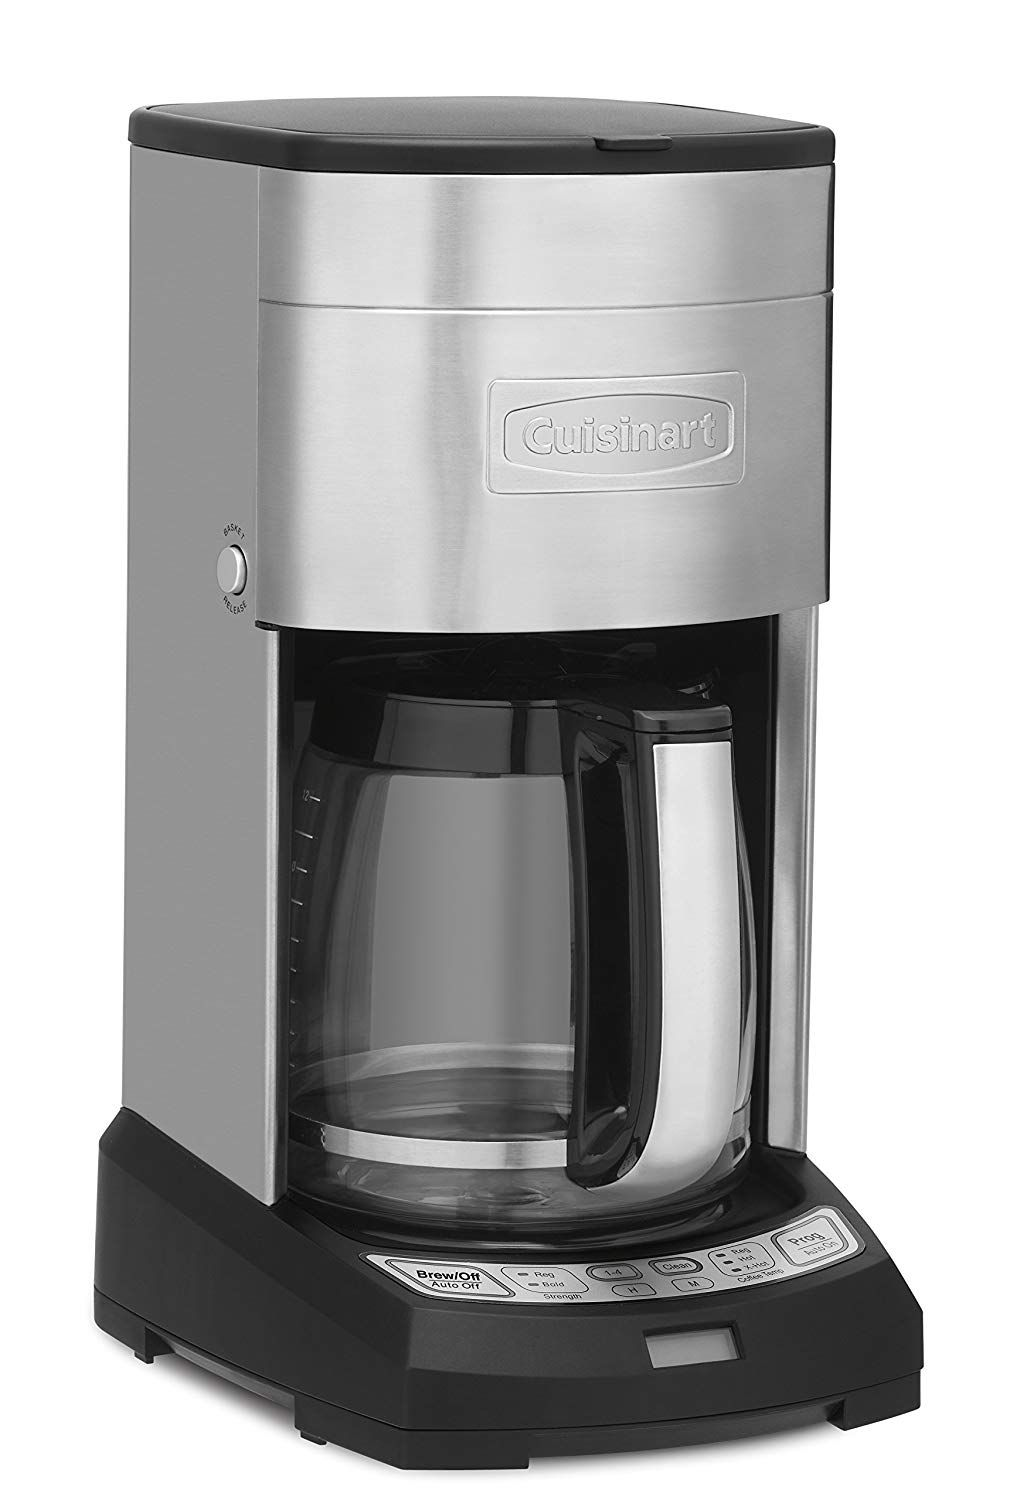 Fully Automatic With Easy Touchpad Controls 24 Hour Brew Start Self Clean Auto Shutoff 0 4 Hours And 1 4 Cup Sett Coffee Maker Best Espresso Machine Coffee